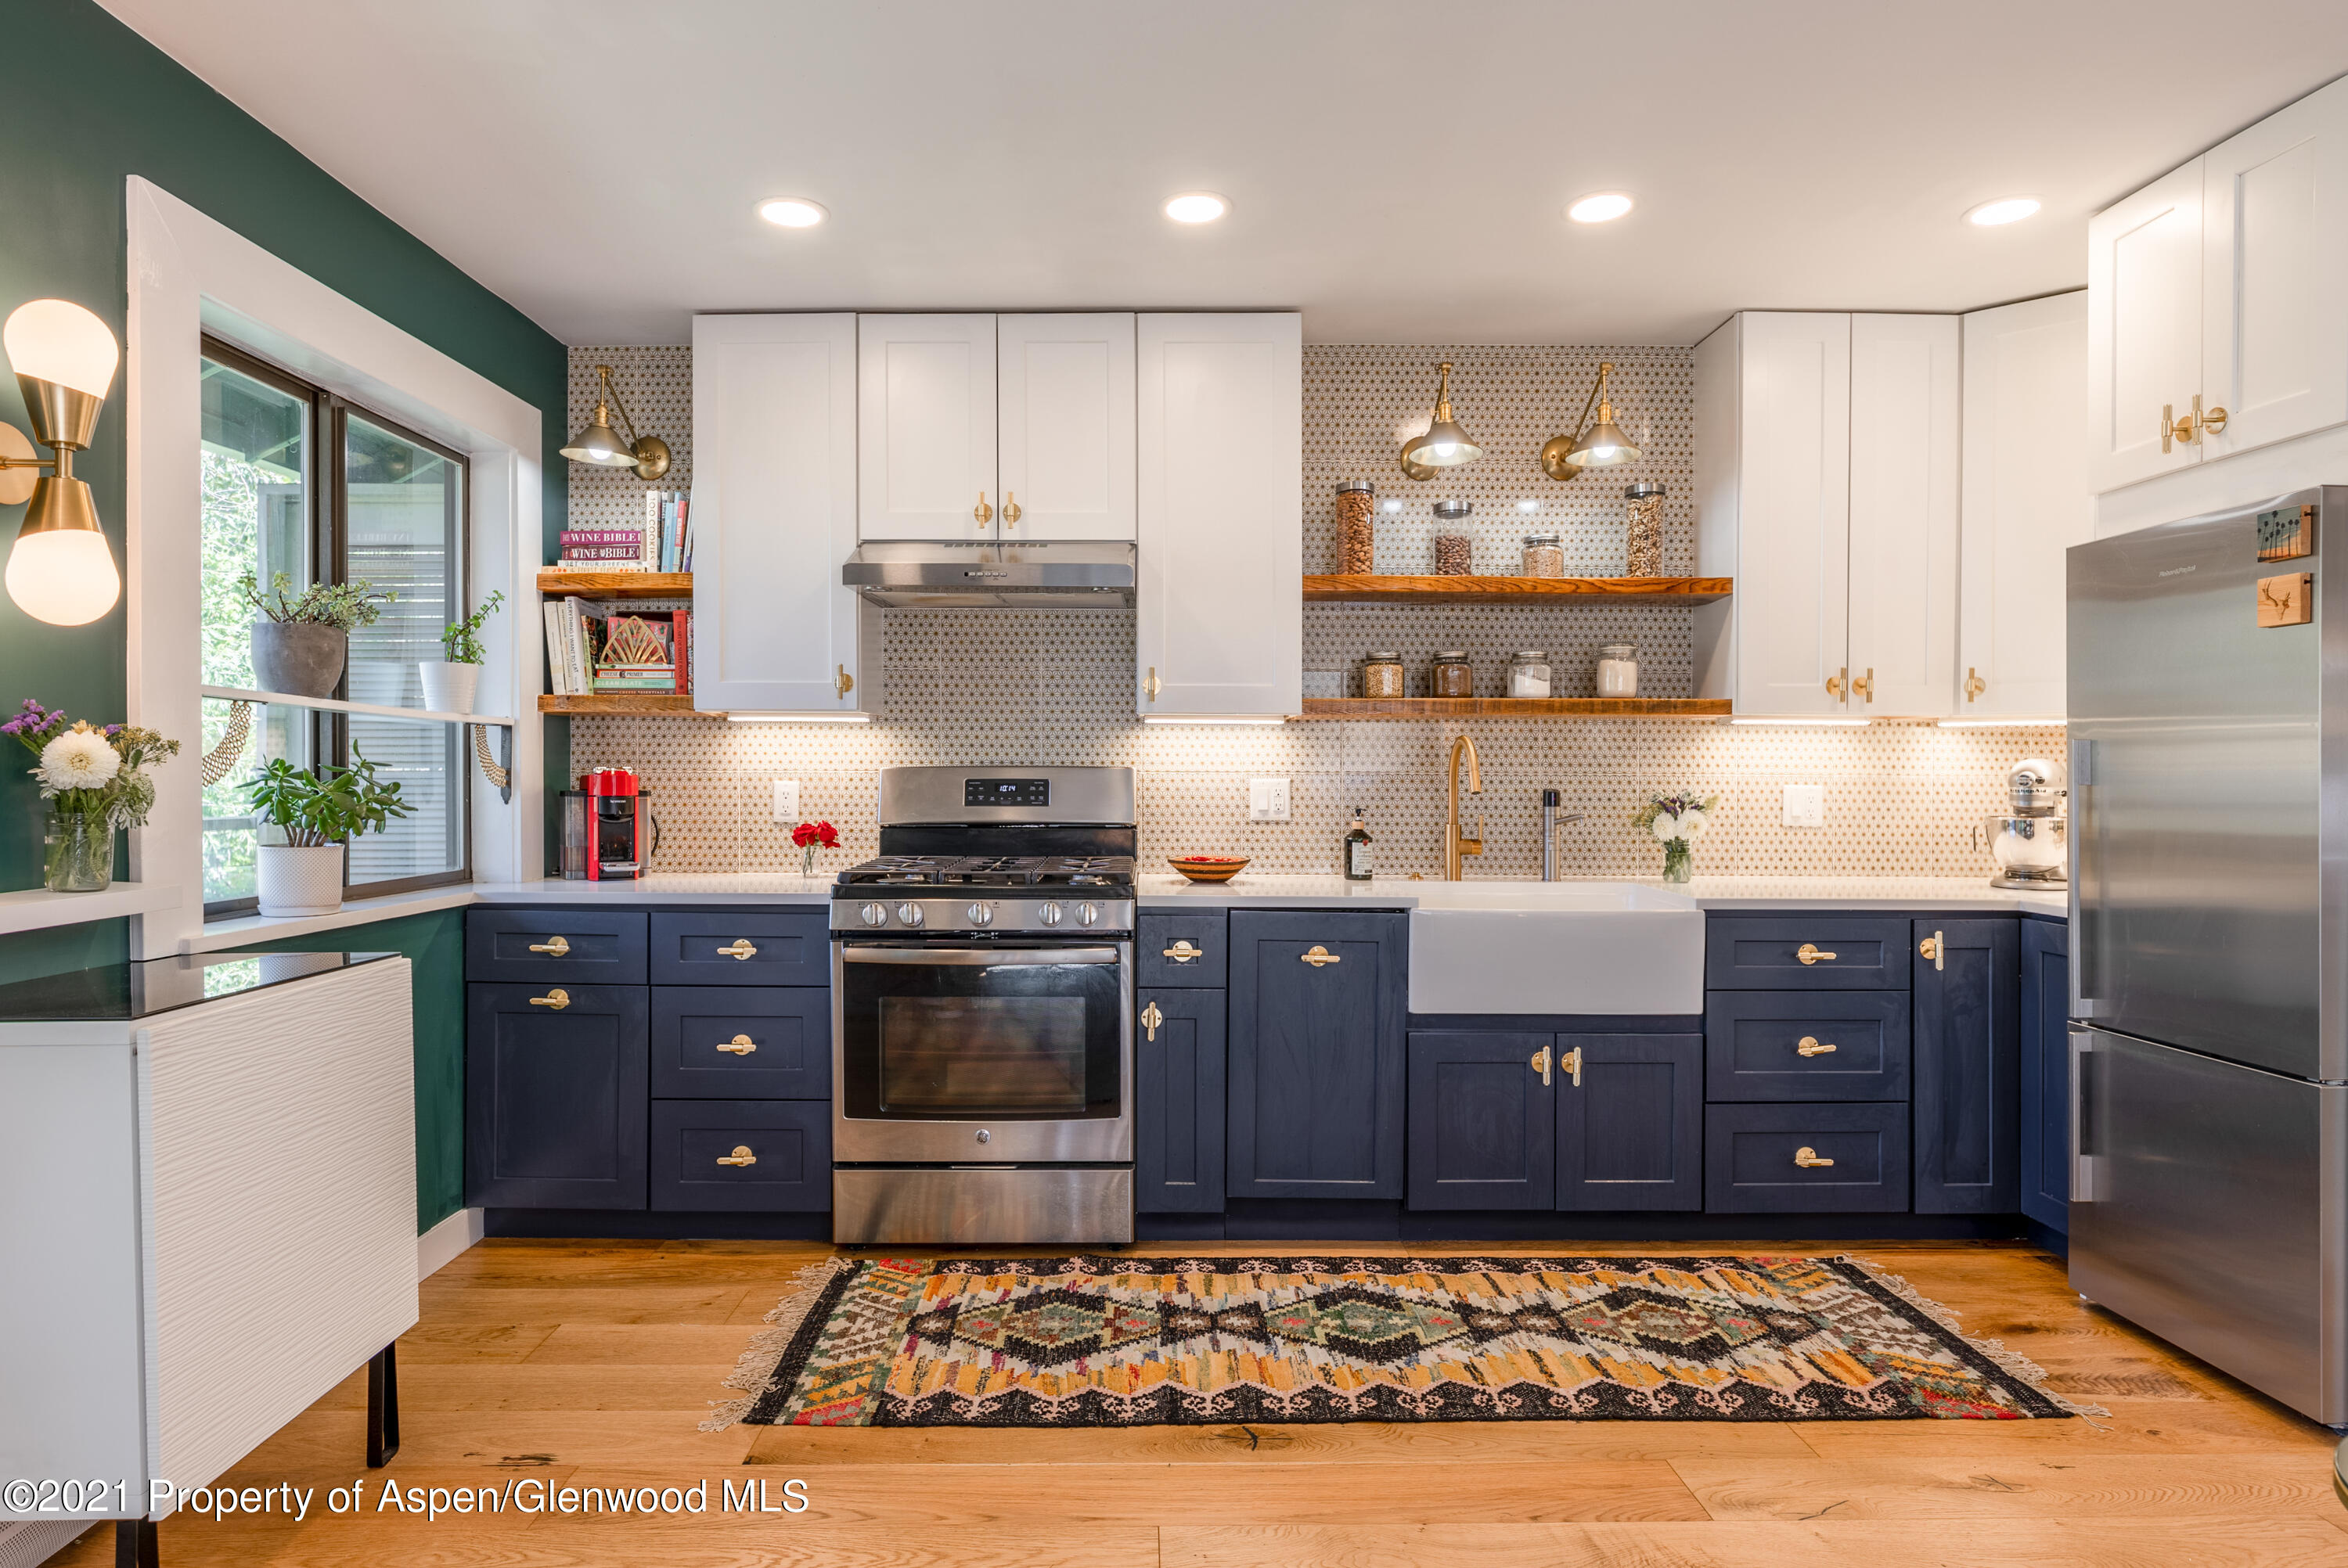 A tasteful pied-a-terre on the Roaring Fork River. Remodeled in 2018, this end corner unit has been thoughtfully planned out.  One bedroom, one bathroom, white oak floors, Italian tiles, custom California Closets, Fisher & Paykel refrigerator, gas range, built-in washer/dryer, deep soak tub and a private balcony steps away from Gold Medal fly fishing. Pet allowed for owners, low HOA dues and one assigned car parking space.